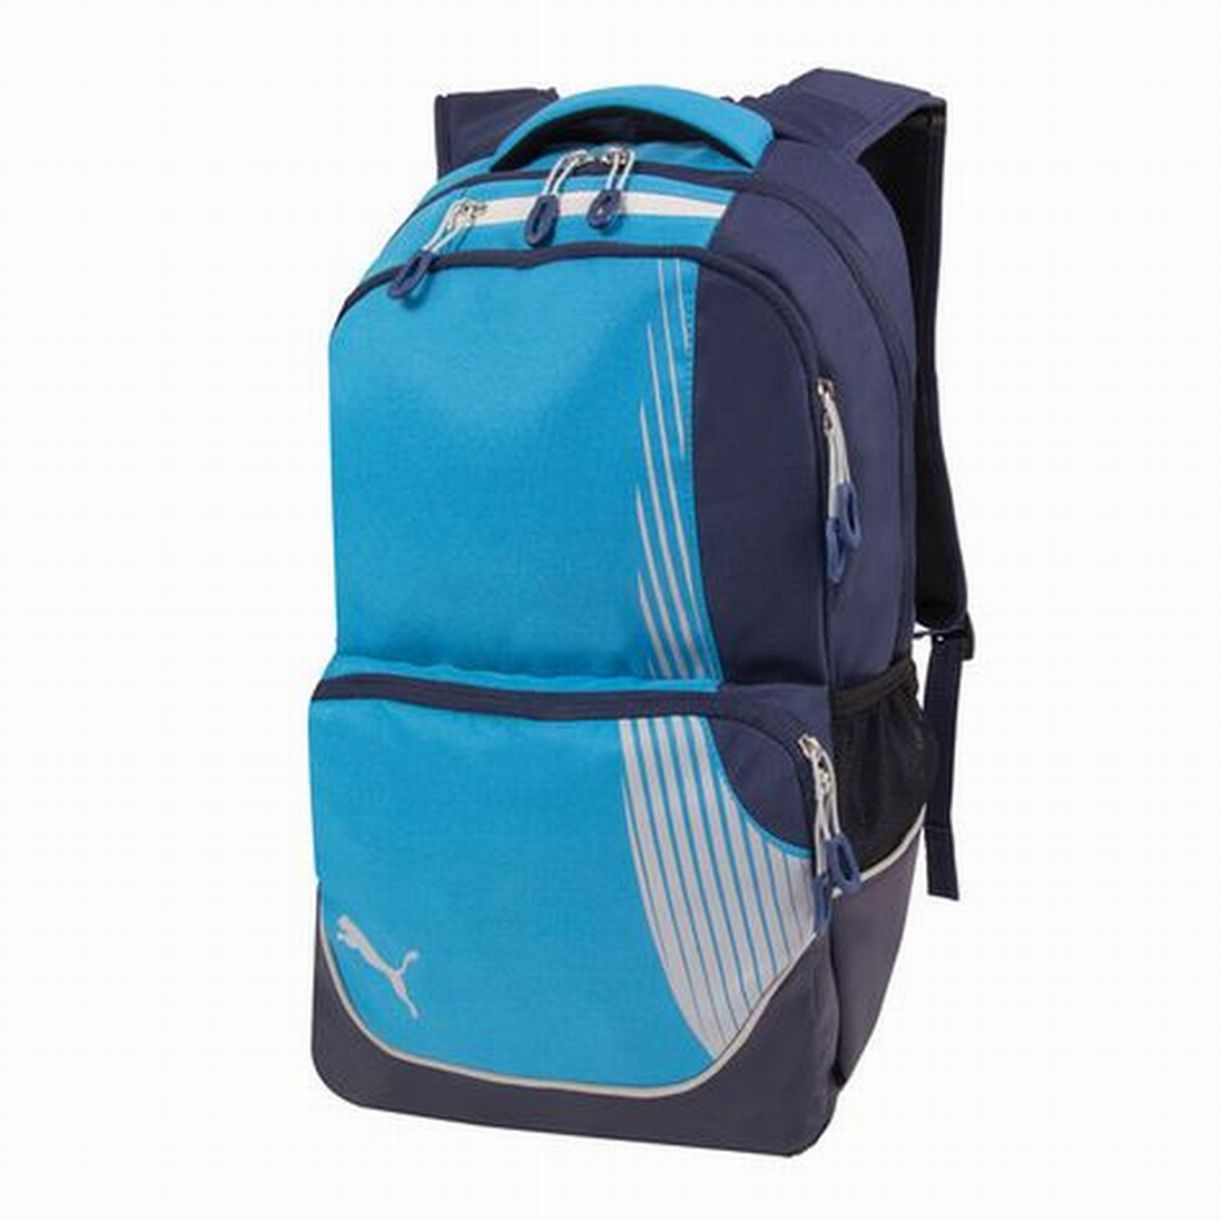 Puma Rapide Blue & Gray Backpack with Padded Laptop Sleeve Sport School Travel